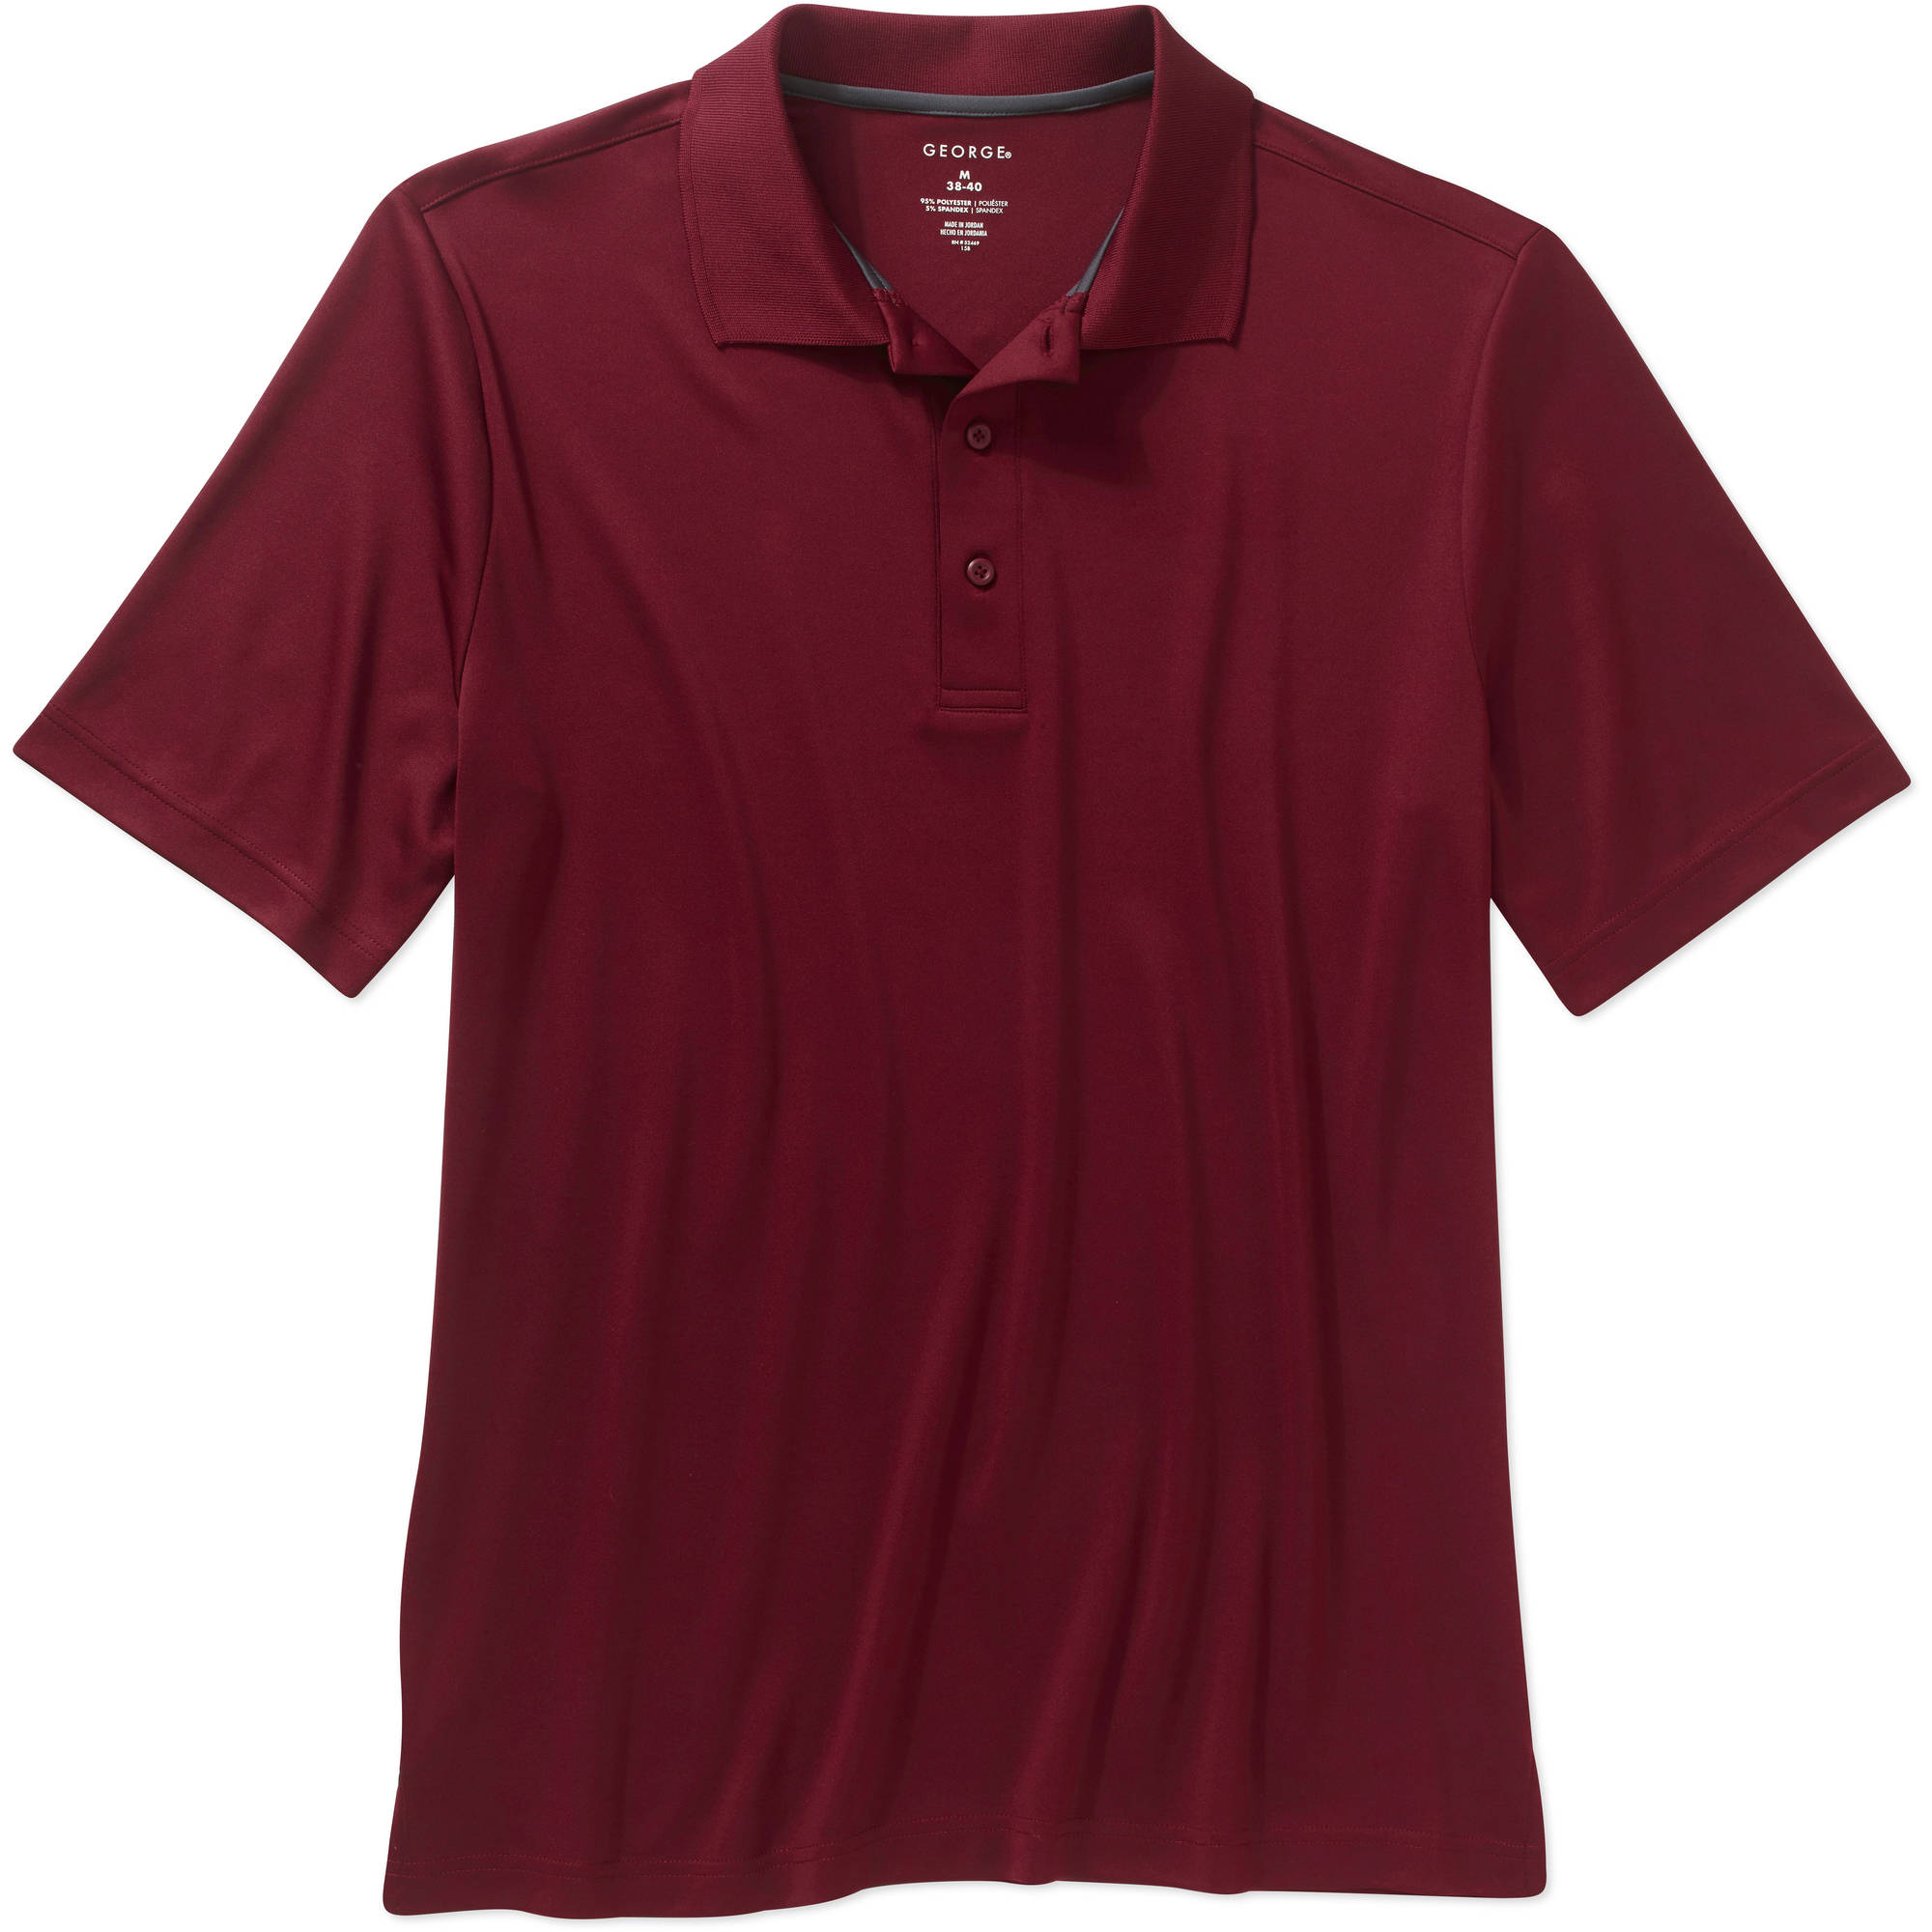 George Big Men's Short Sleeve Polo